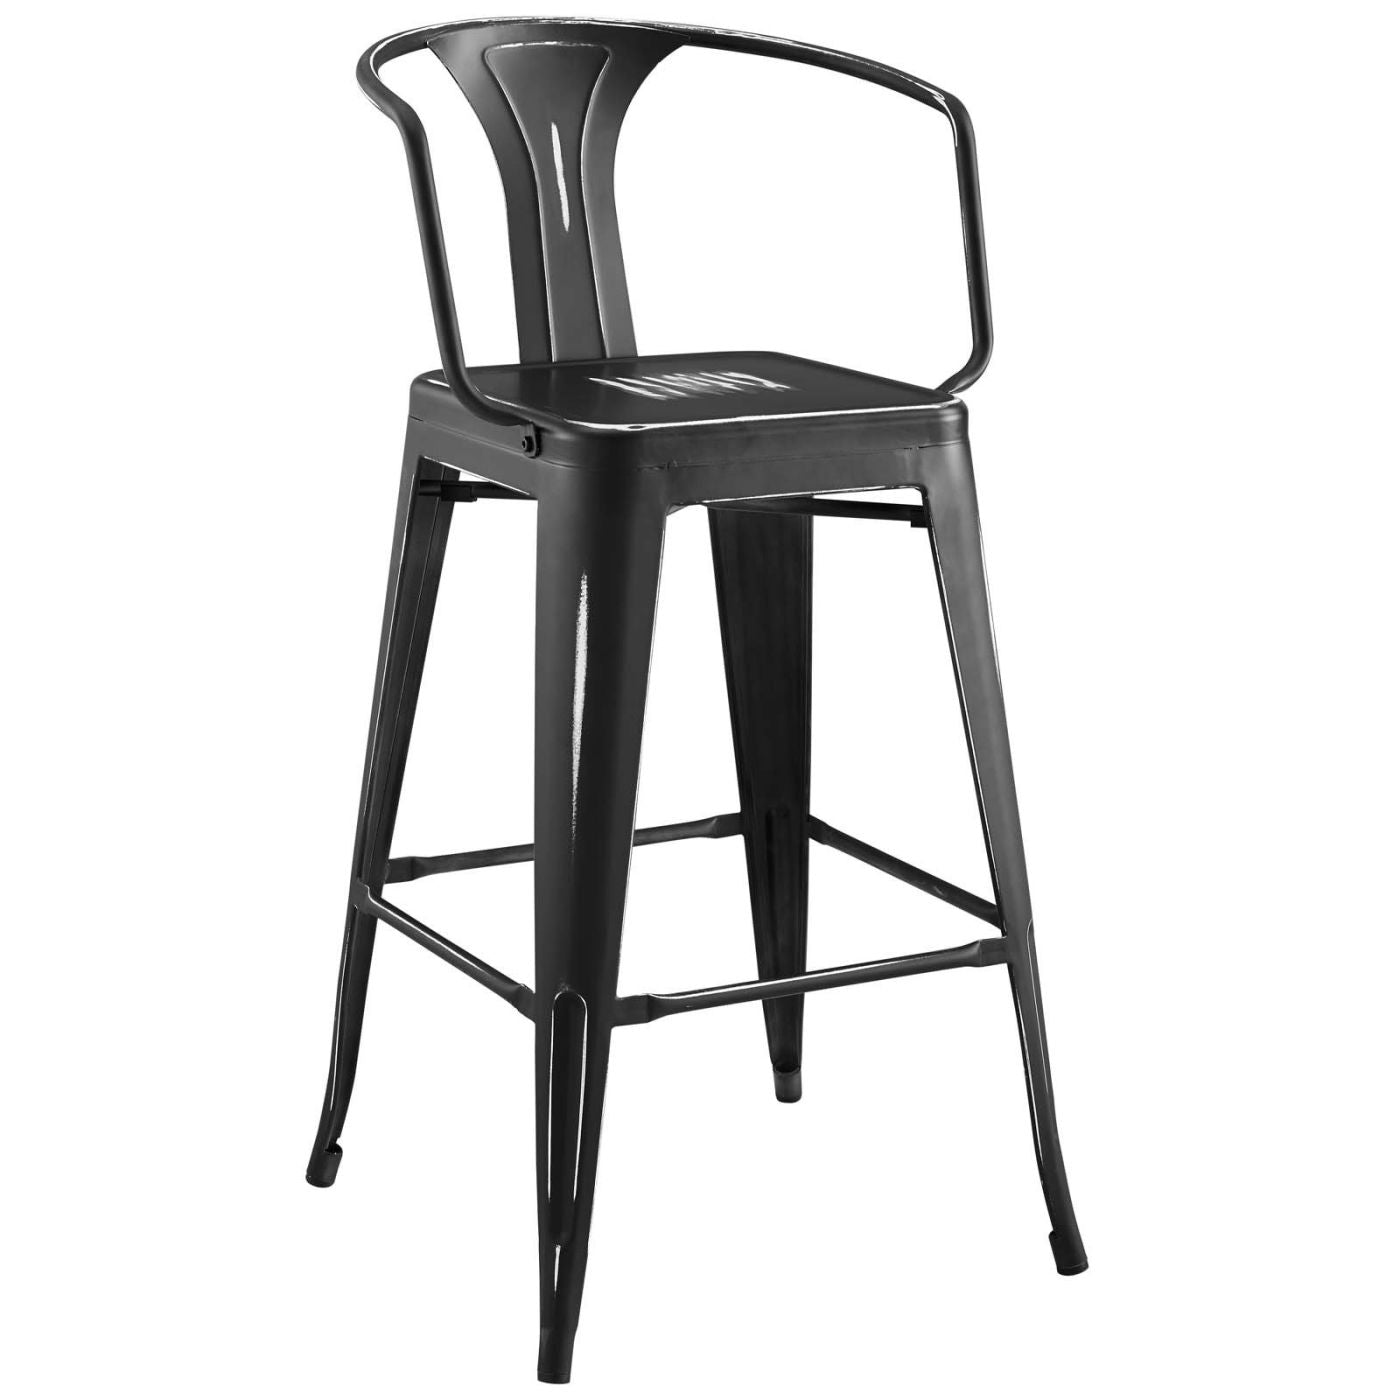 Promenade Cafe And Bistro Style Bar Stool Powder Coated Steel Black Chair  ...